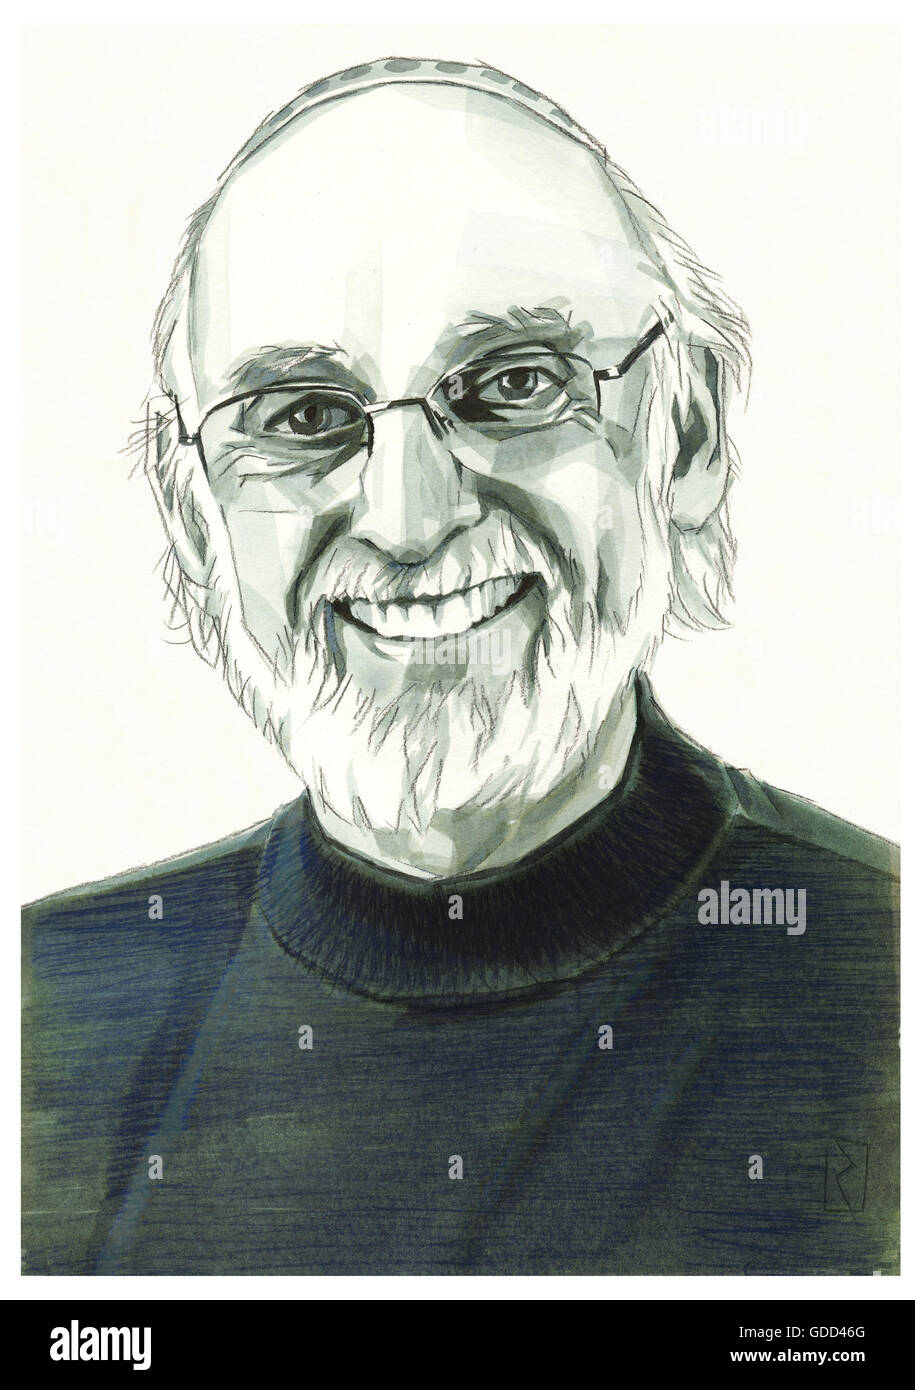 Gottman, John Mordechai, * 1942, American scientist (psychologist), portrait, monochrome drawing by Jan Rieckhoff, - Stock Image